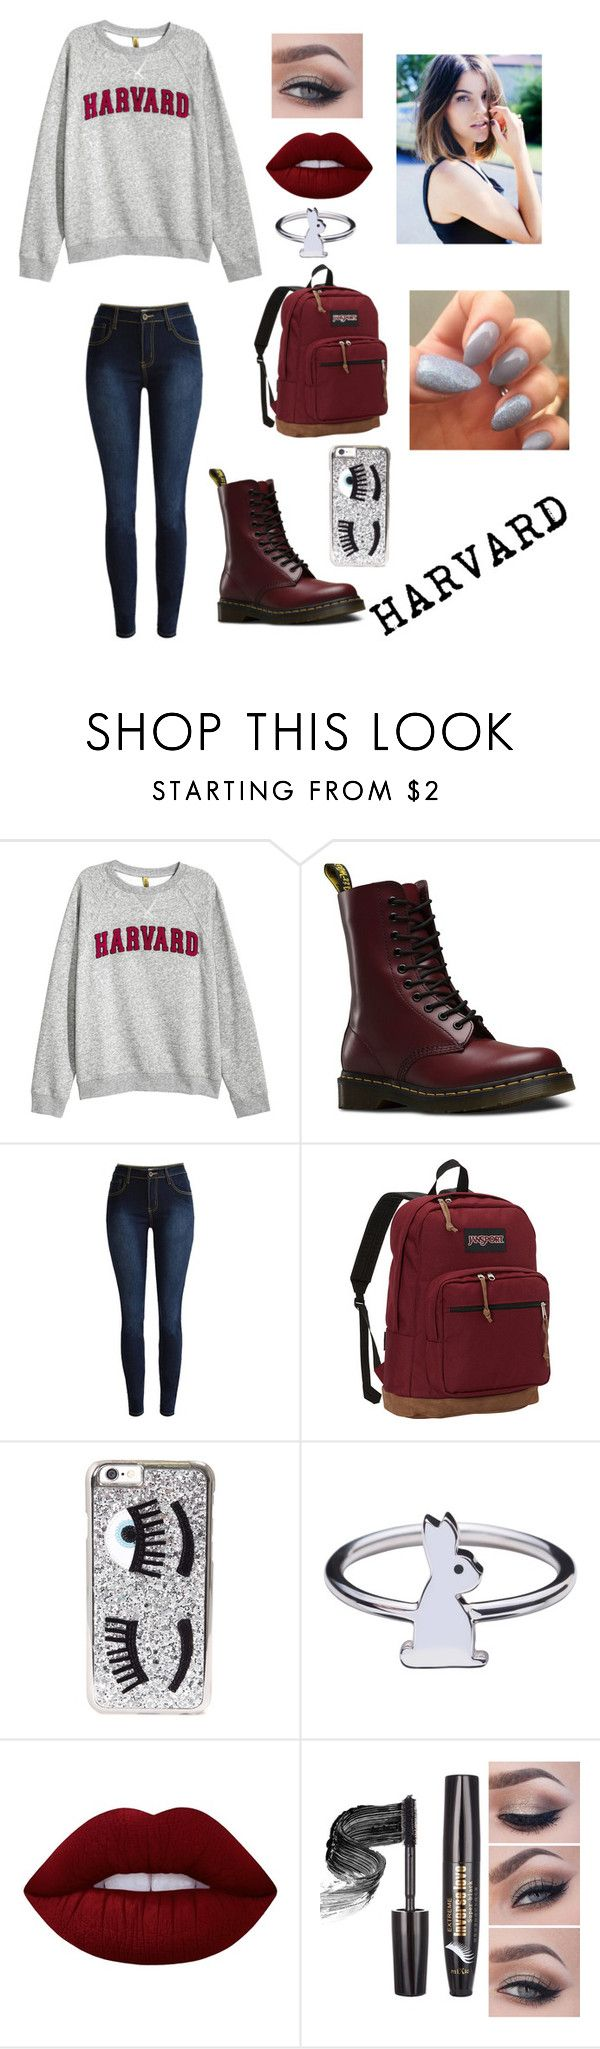 """Harvard University"" by lovekeke9204 ❤ liked on Polyvore featuring H&M, Dr. Martens, JanSport, Chiara Ferragni, Rachel Balfour Jewellery and Lime Crime"